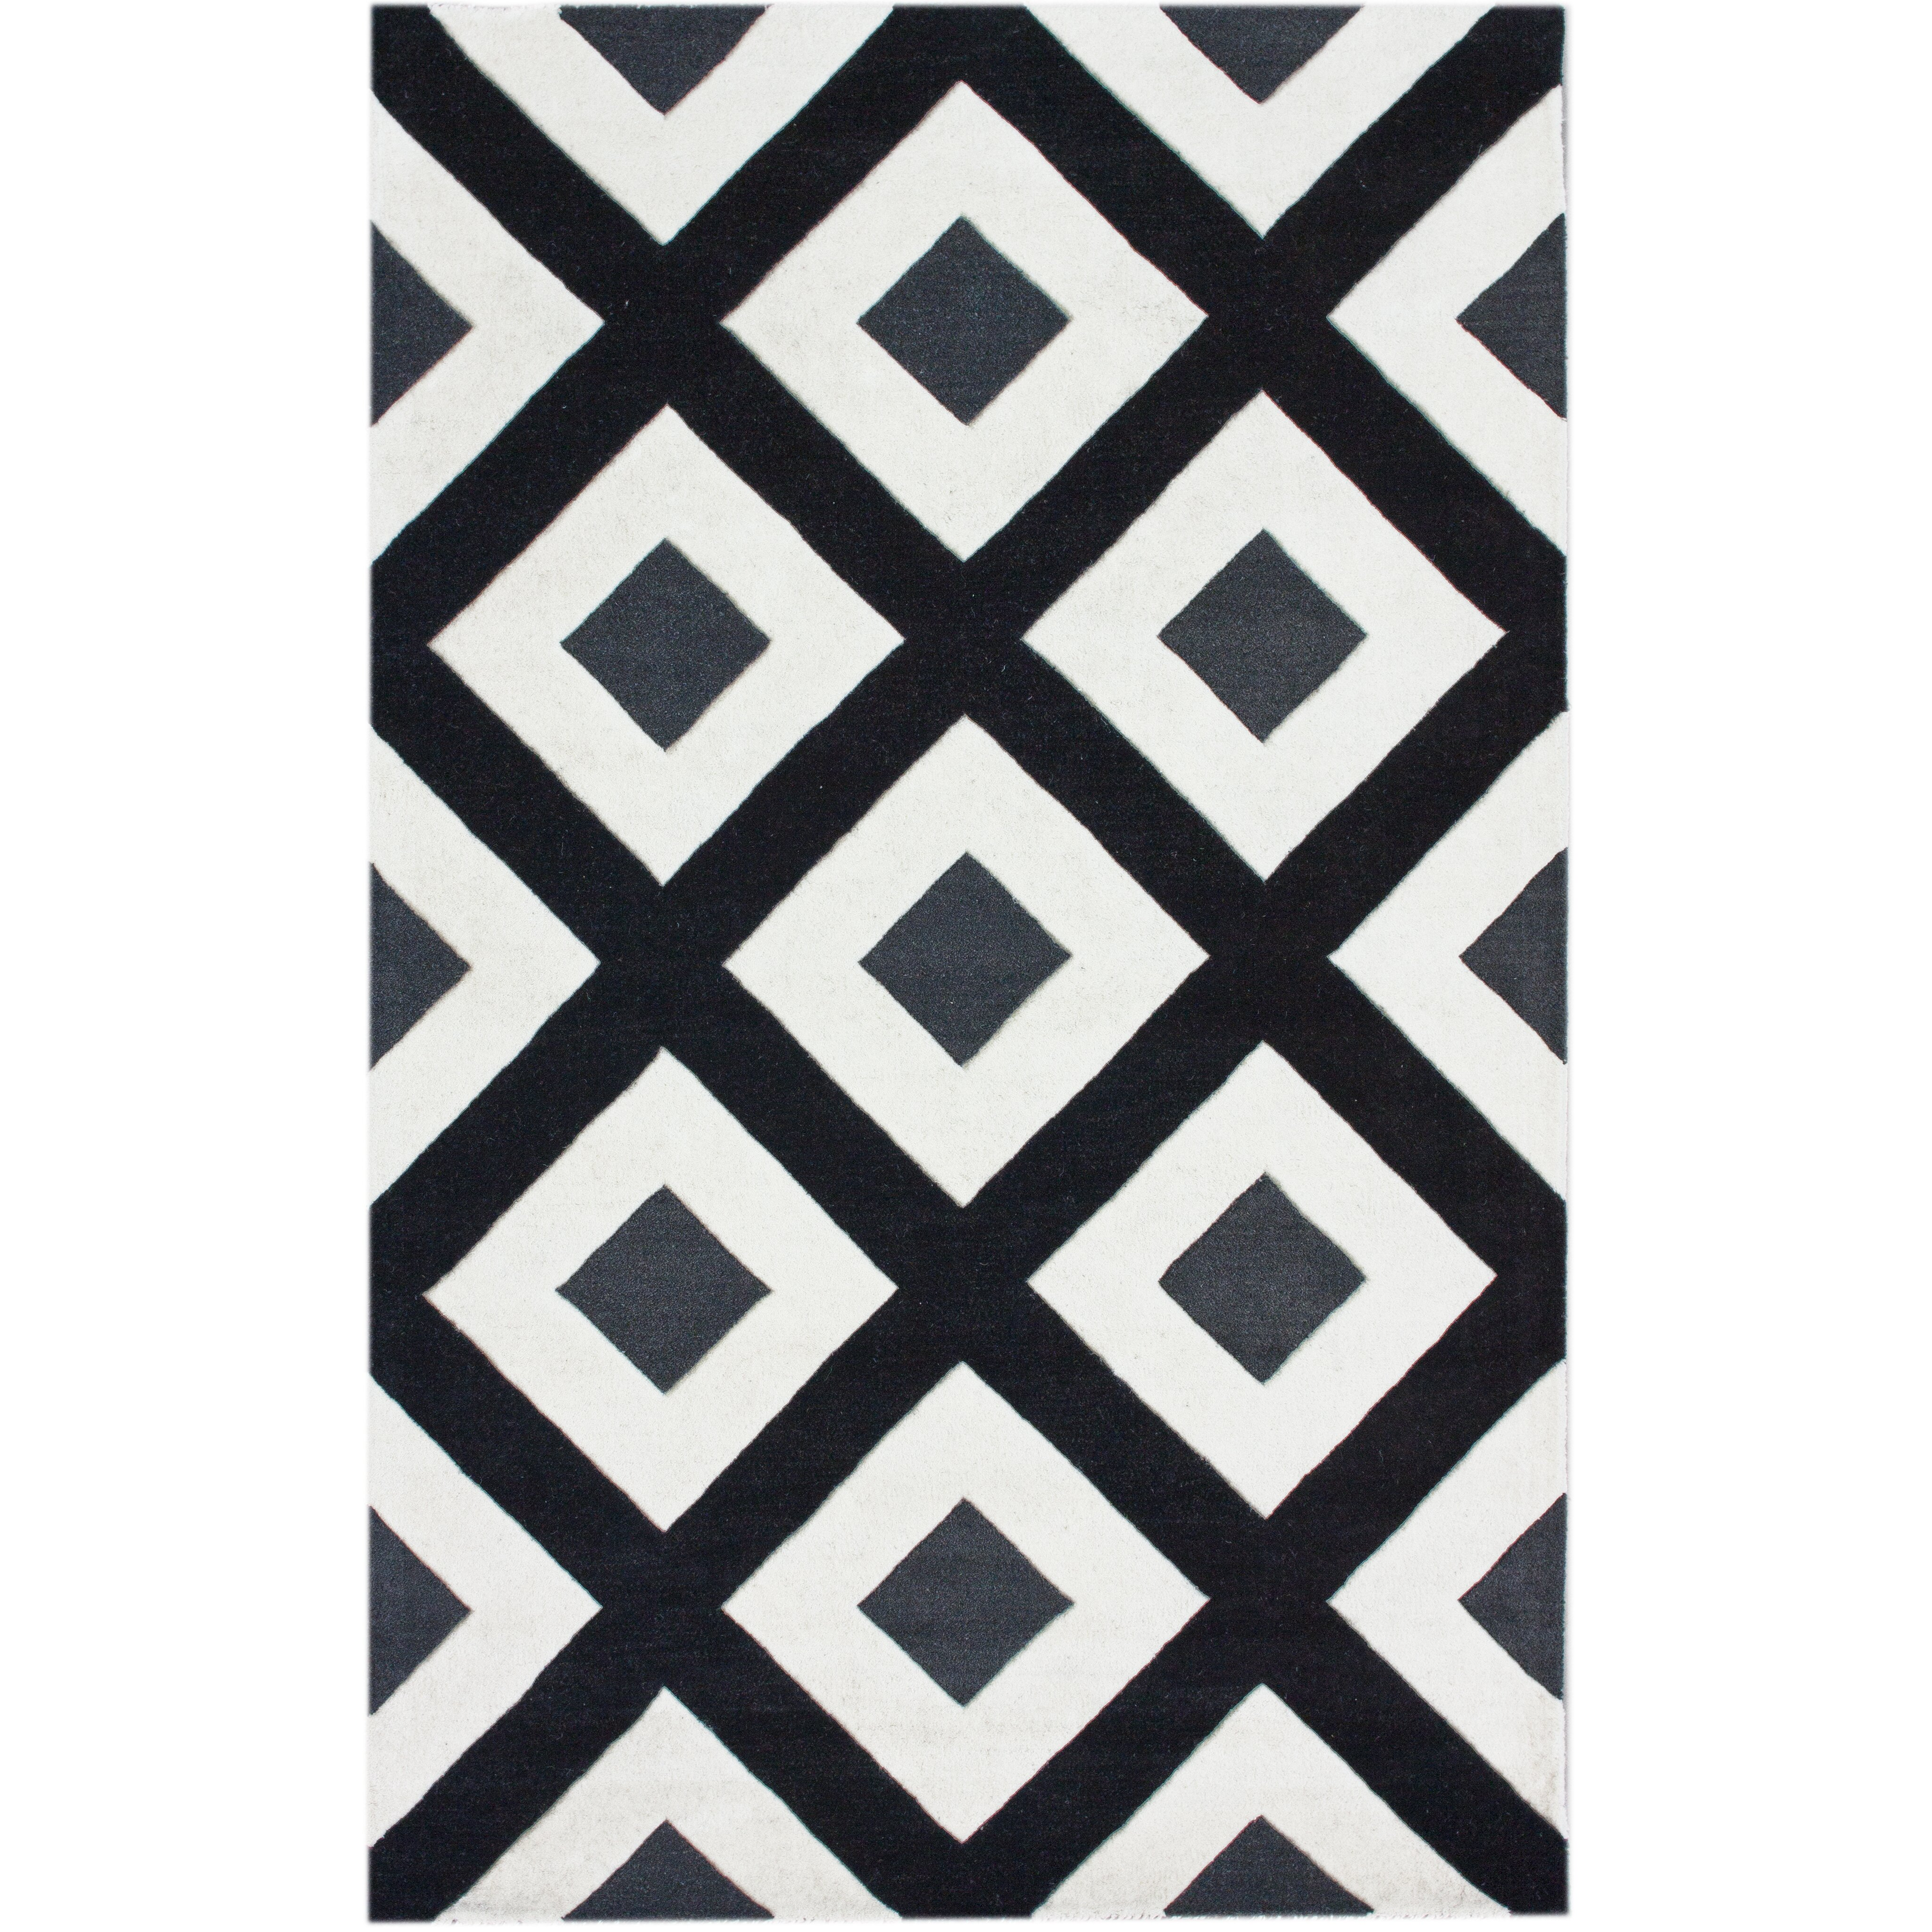 Nuloom Bella Diamonds Black Amp White Area Rug Amp Reviews